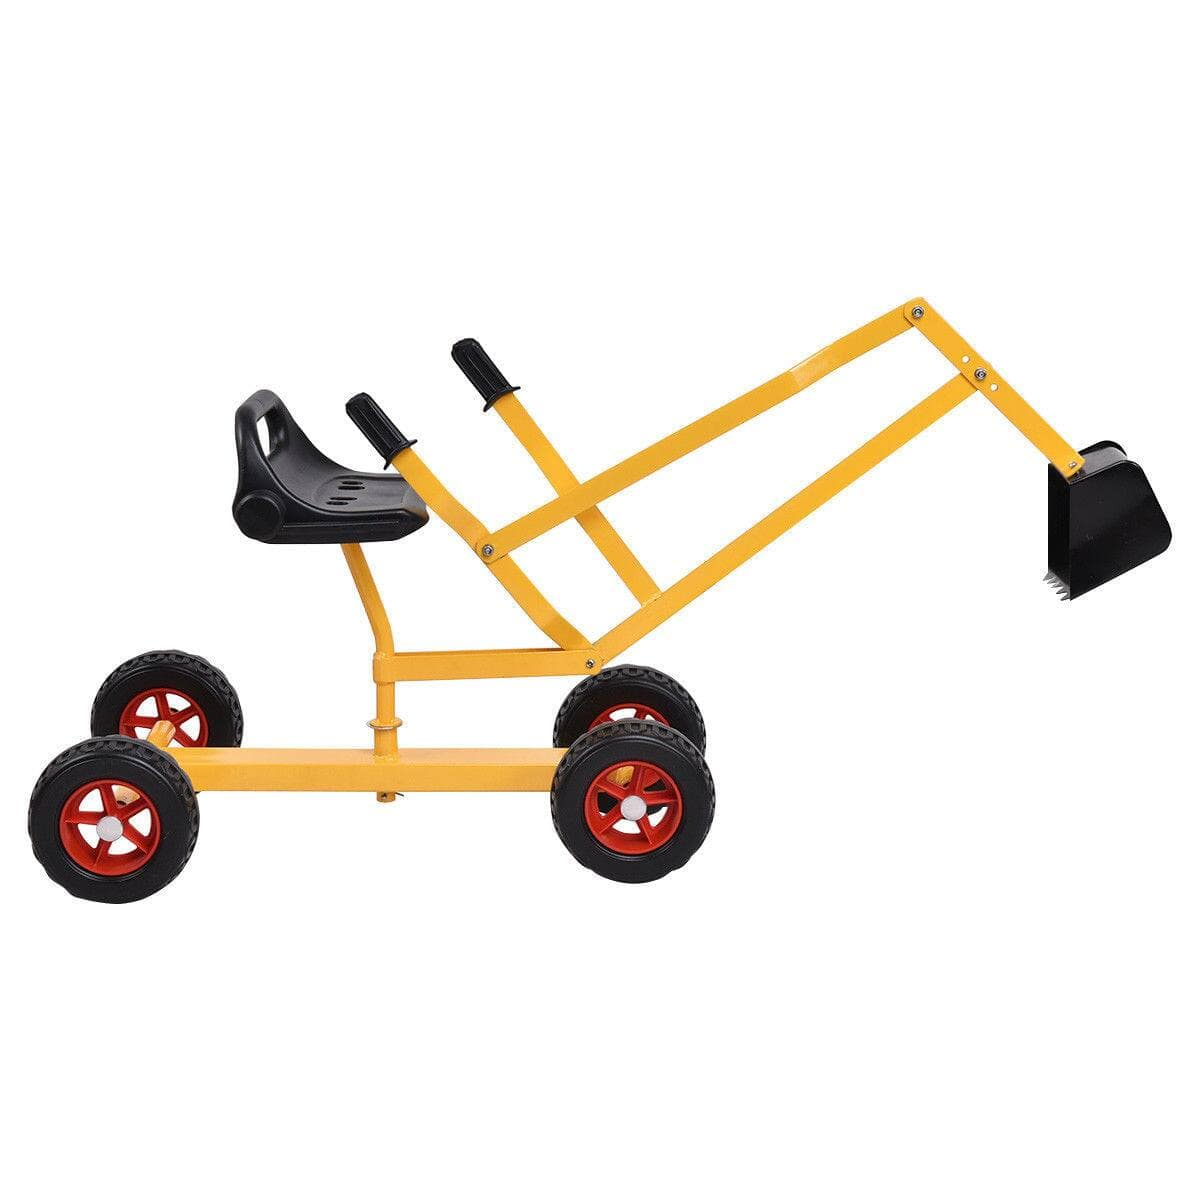 Costway Kid Ride-on 4-Wheel Excavator Sand Digger for $50.95 + Free Shipping